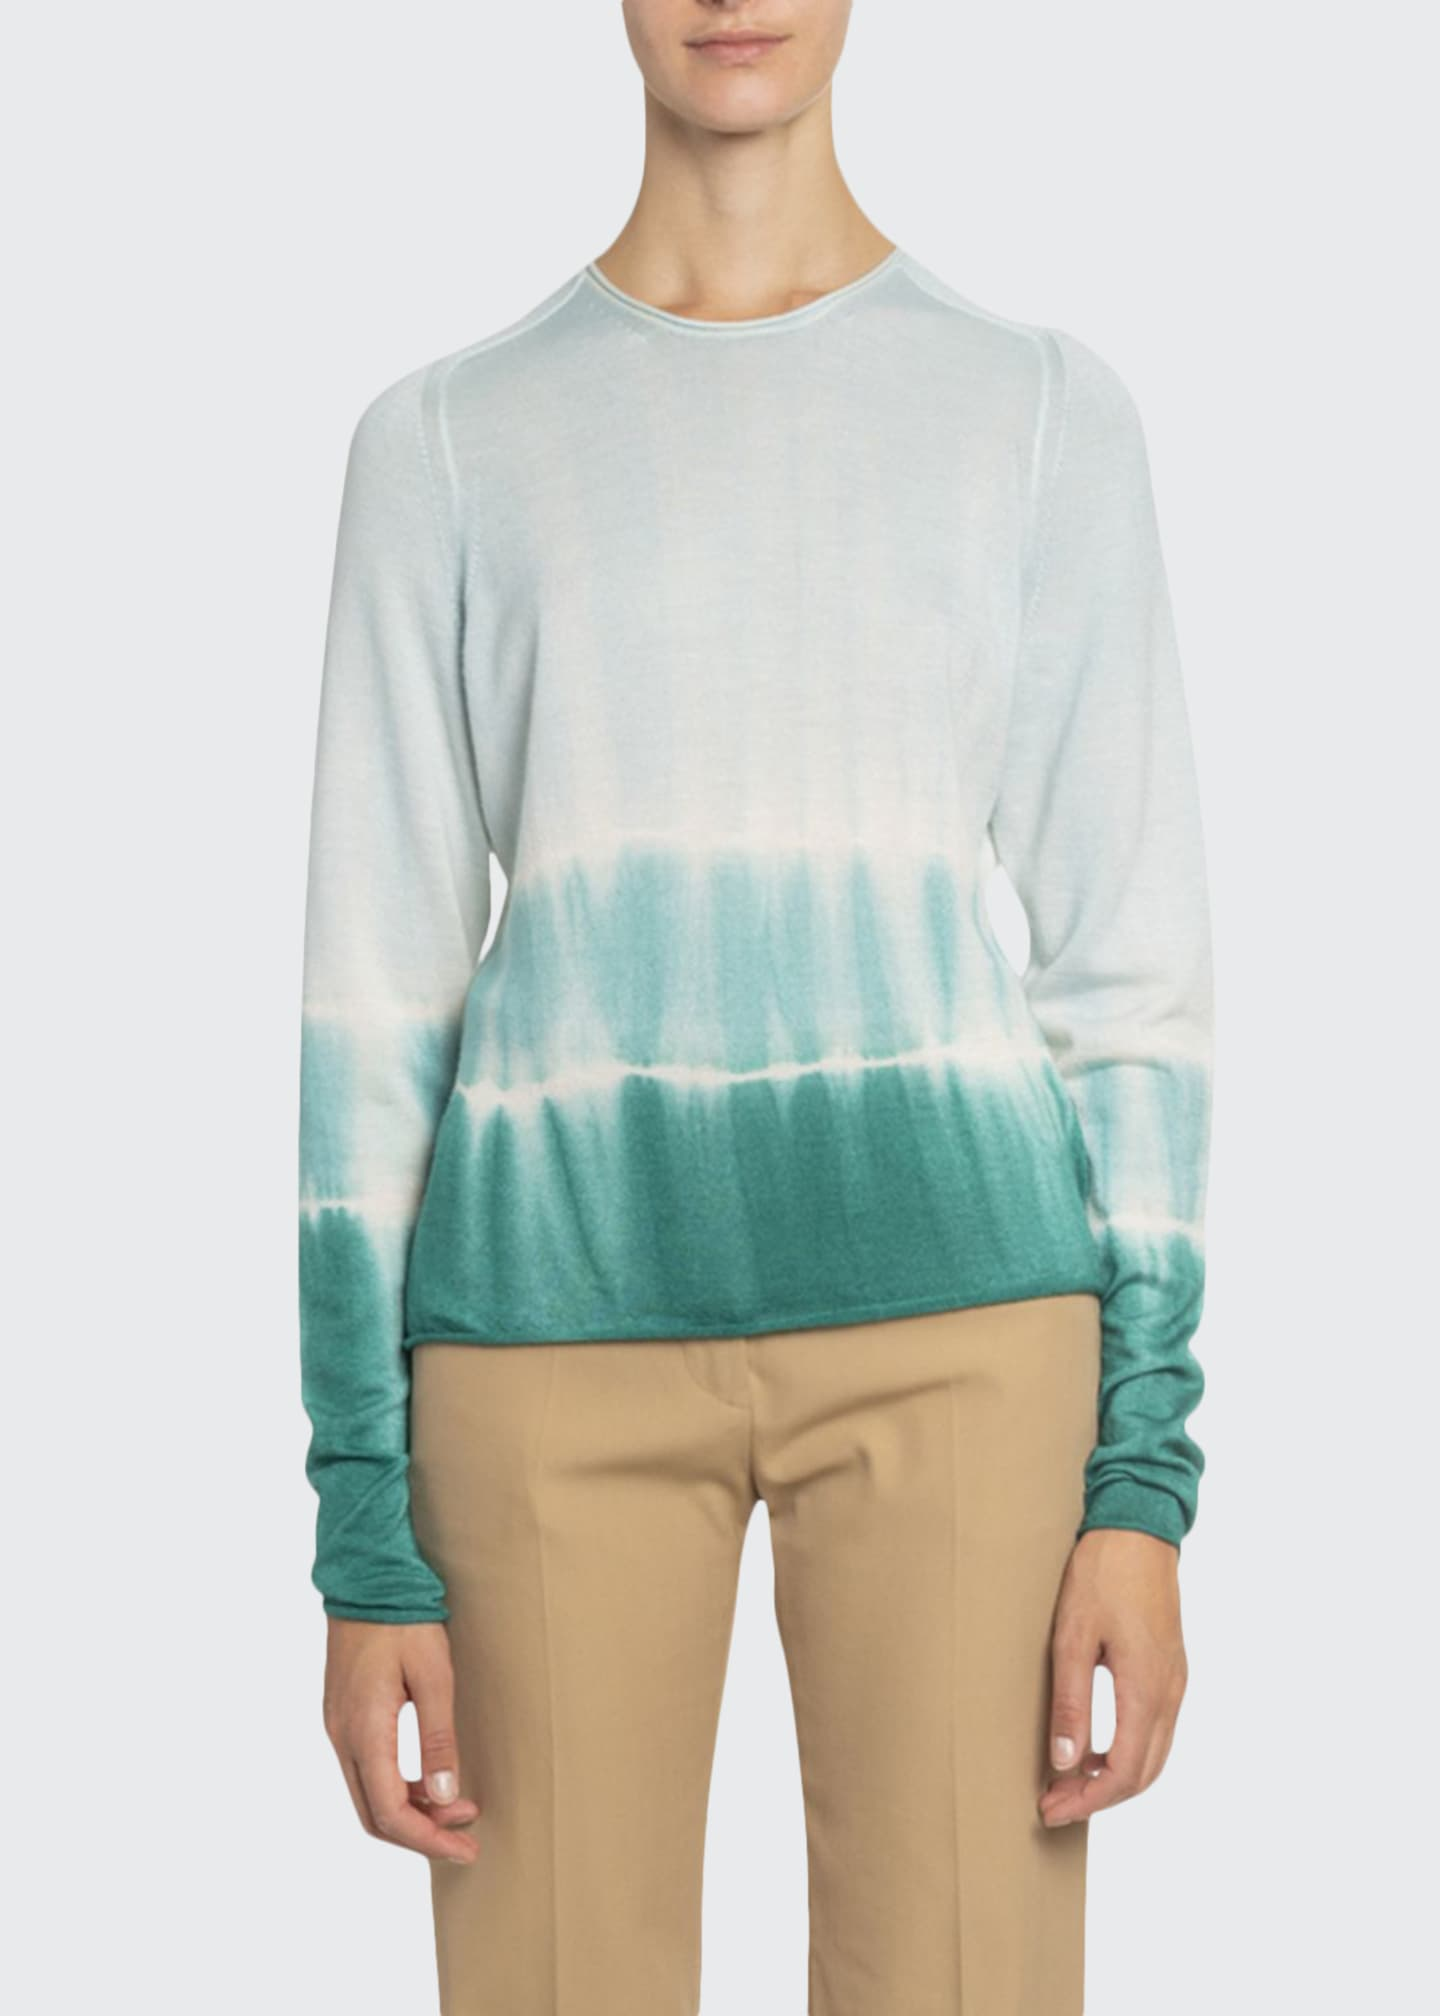 Boon The Shop Ombre Tie-Dye Long-Sleeve Sweater